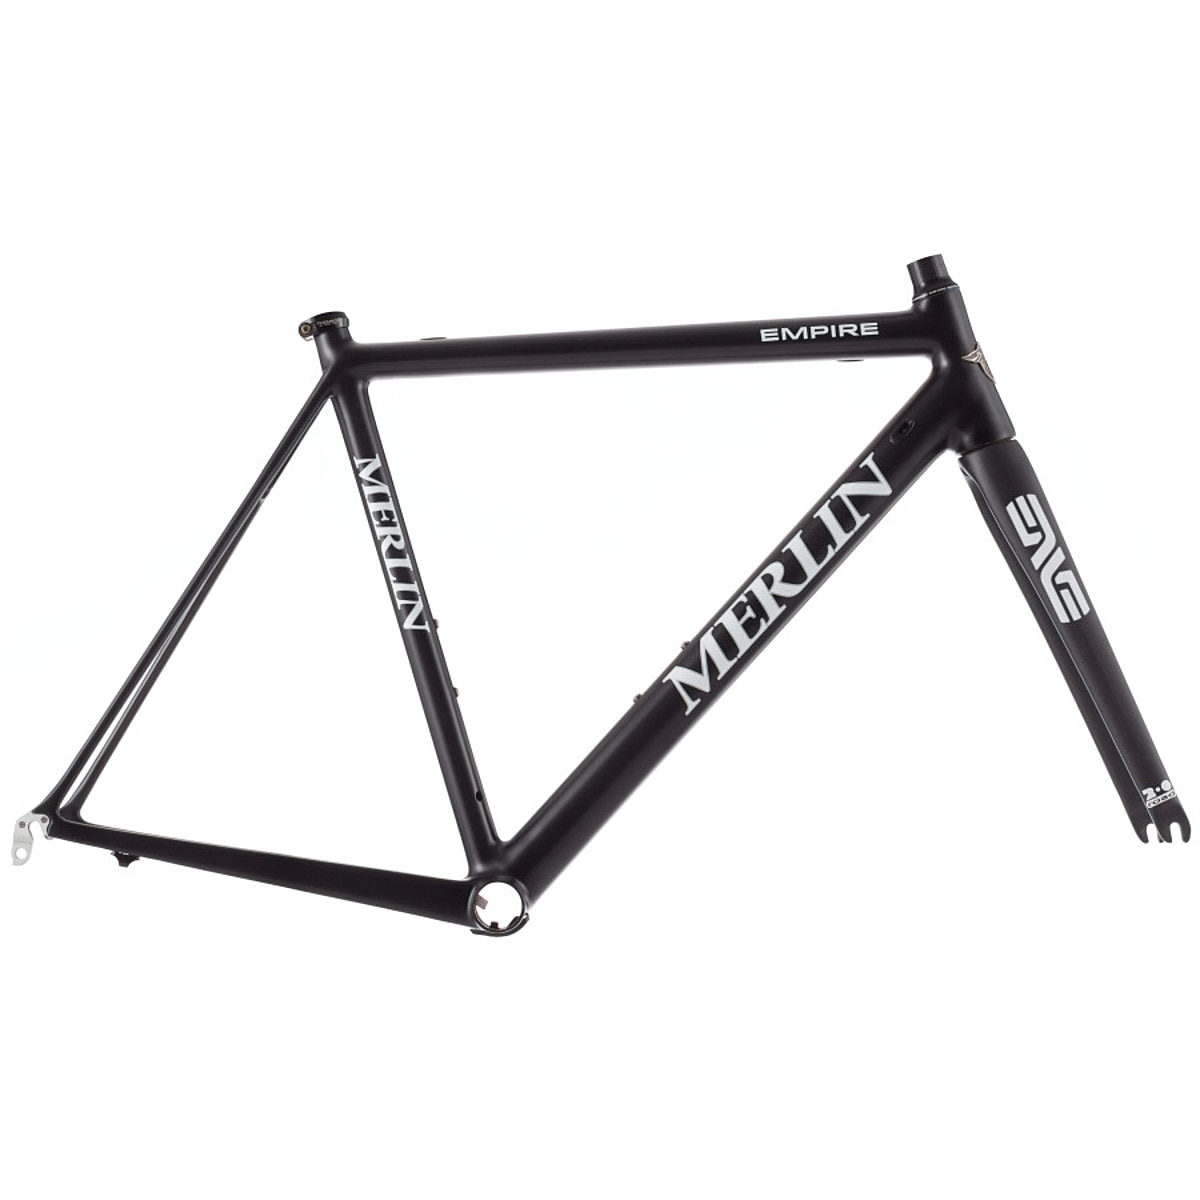 Merlin Empire Road Bike Frameset 2015 Competitive Cyclist